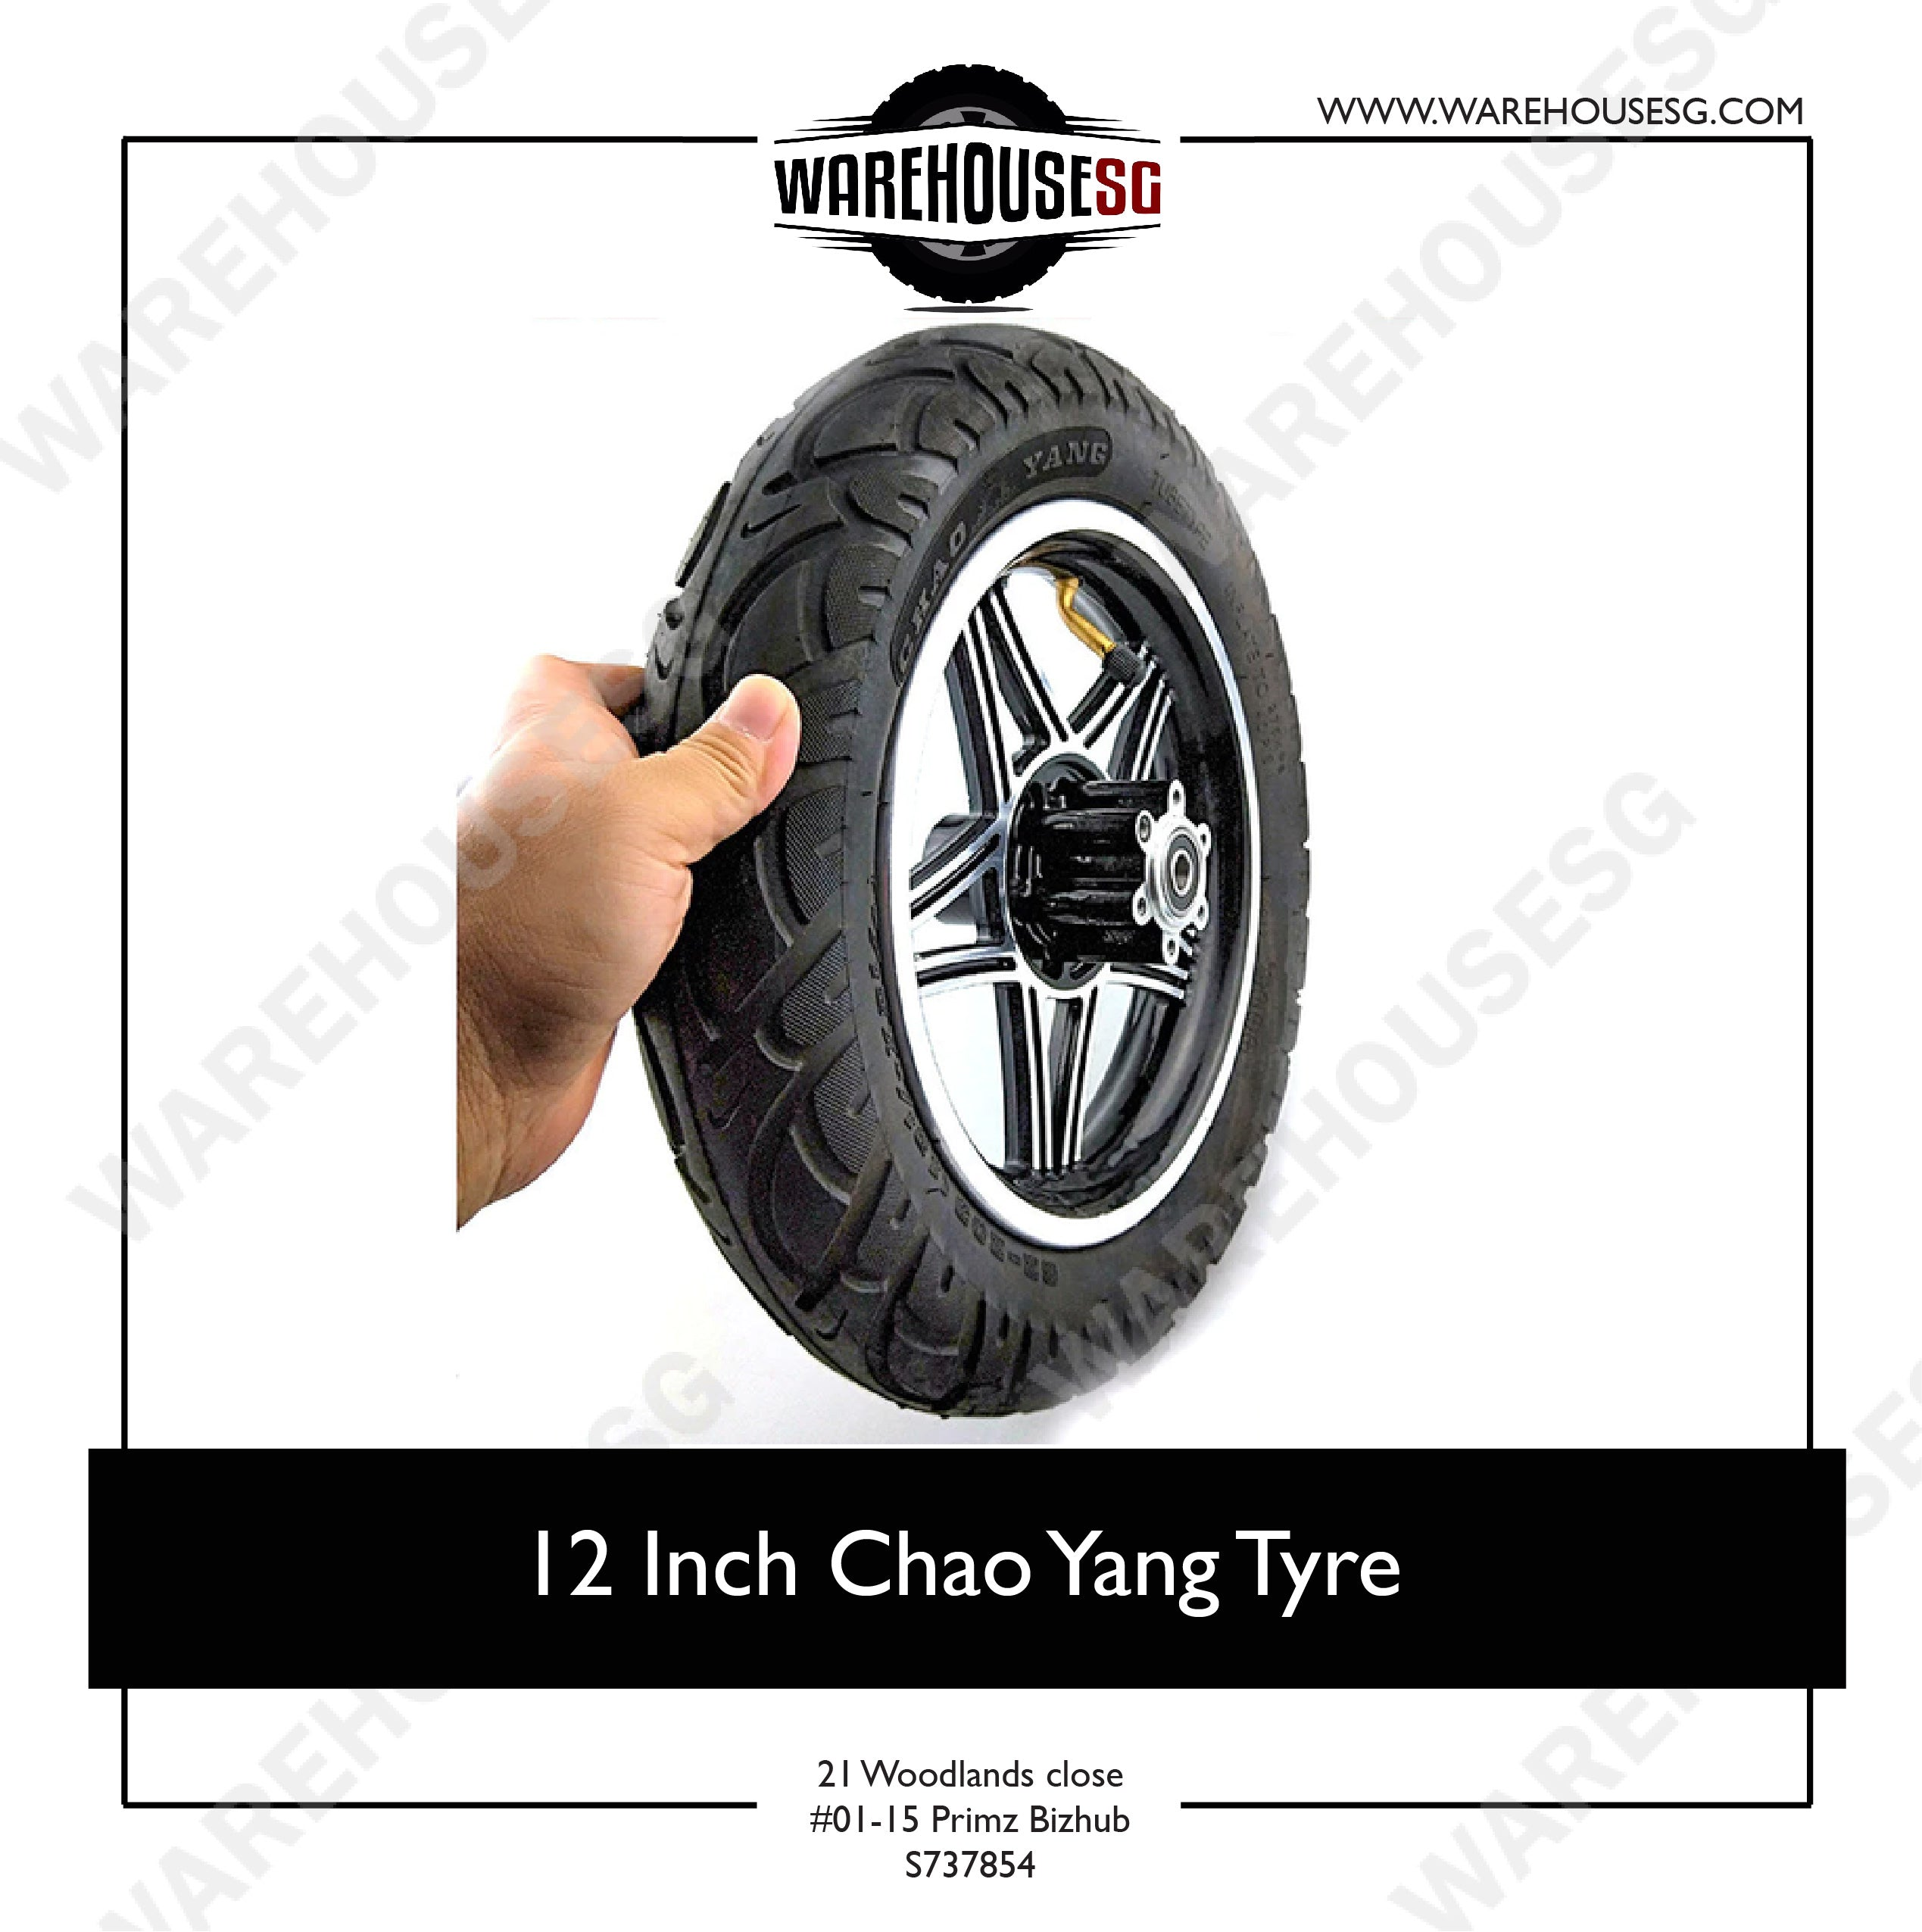 12 Inch Chao Yang Tyre